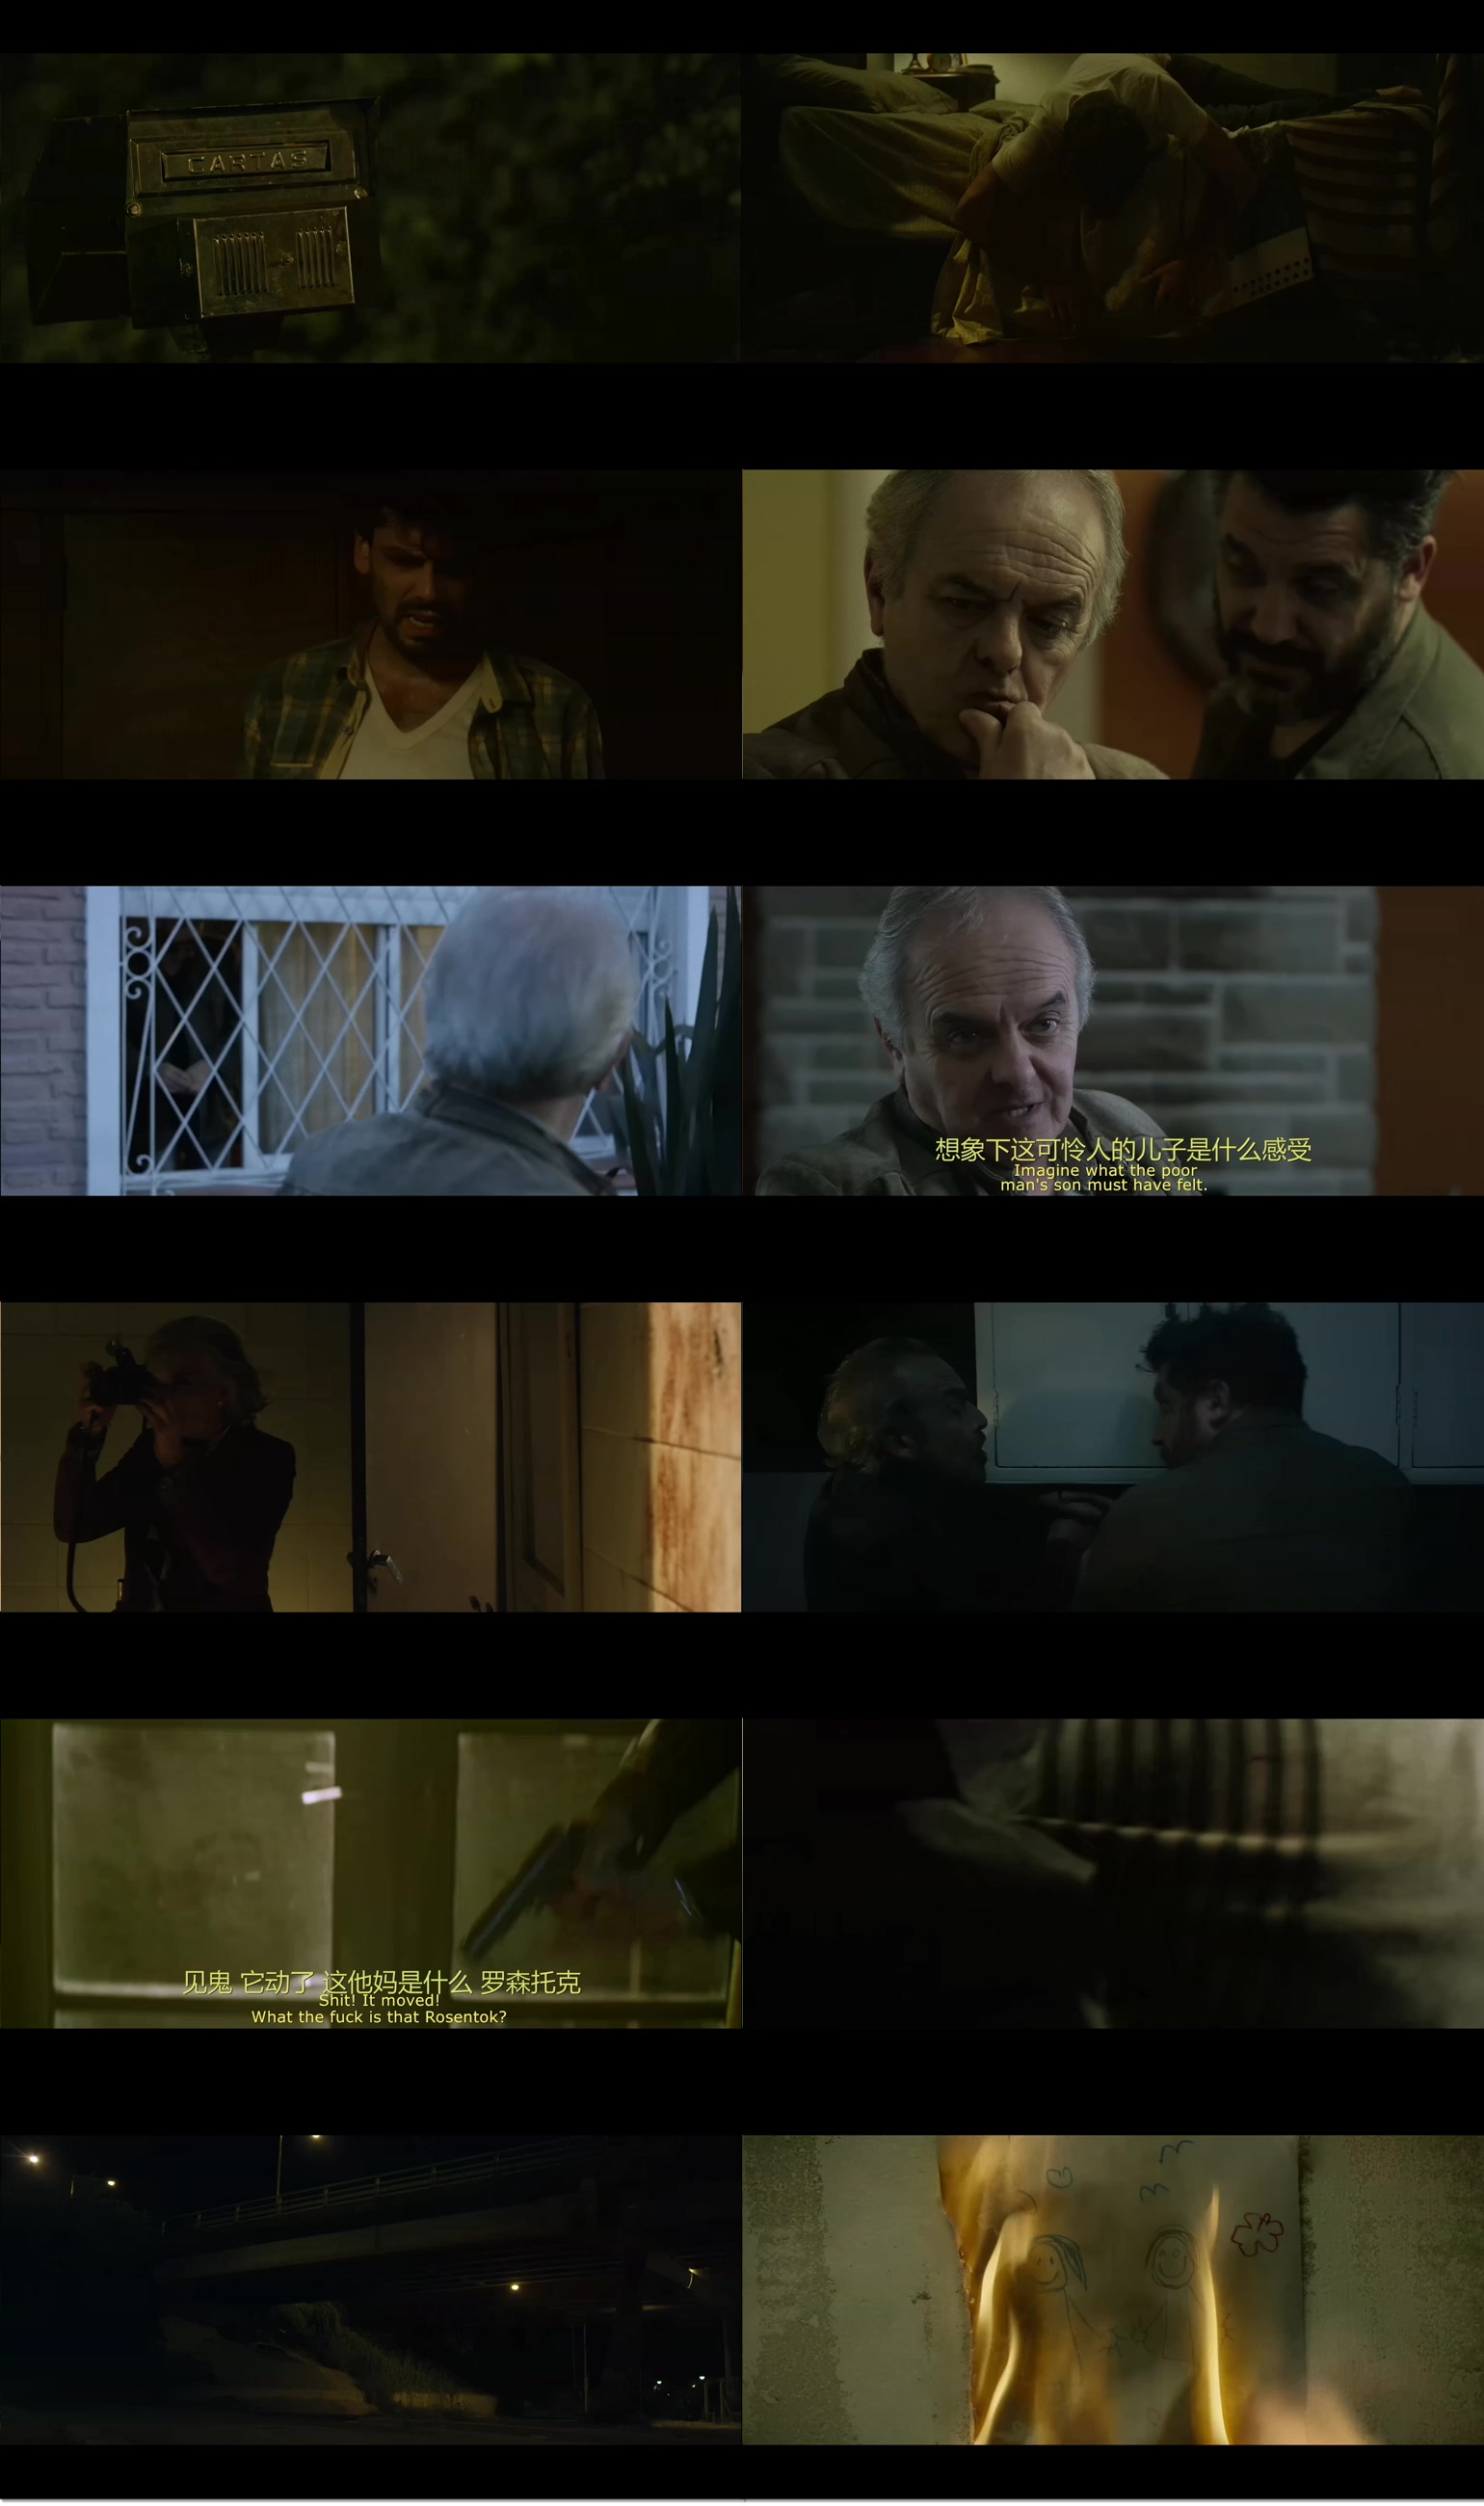 ????.Aterrados.2017.1080p.WEB-DL.mkv